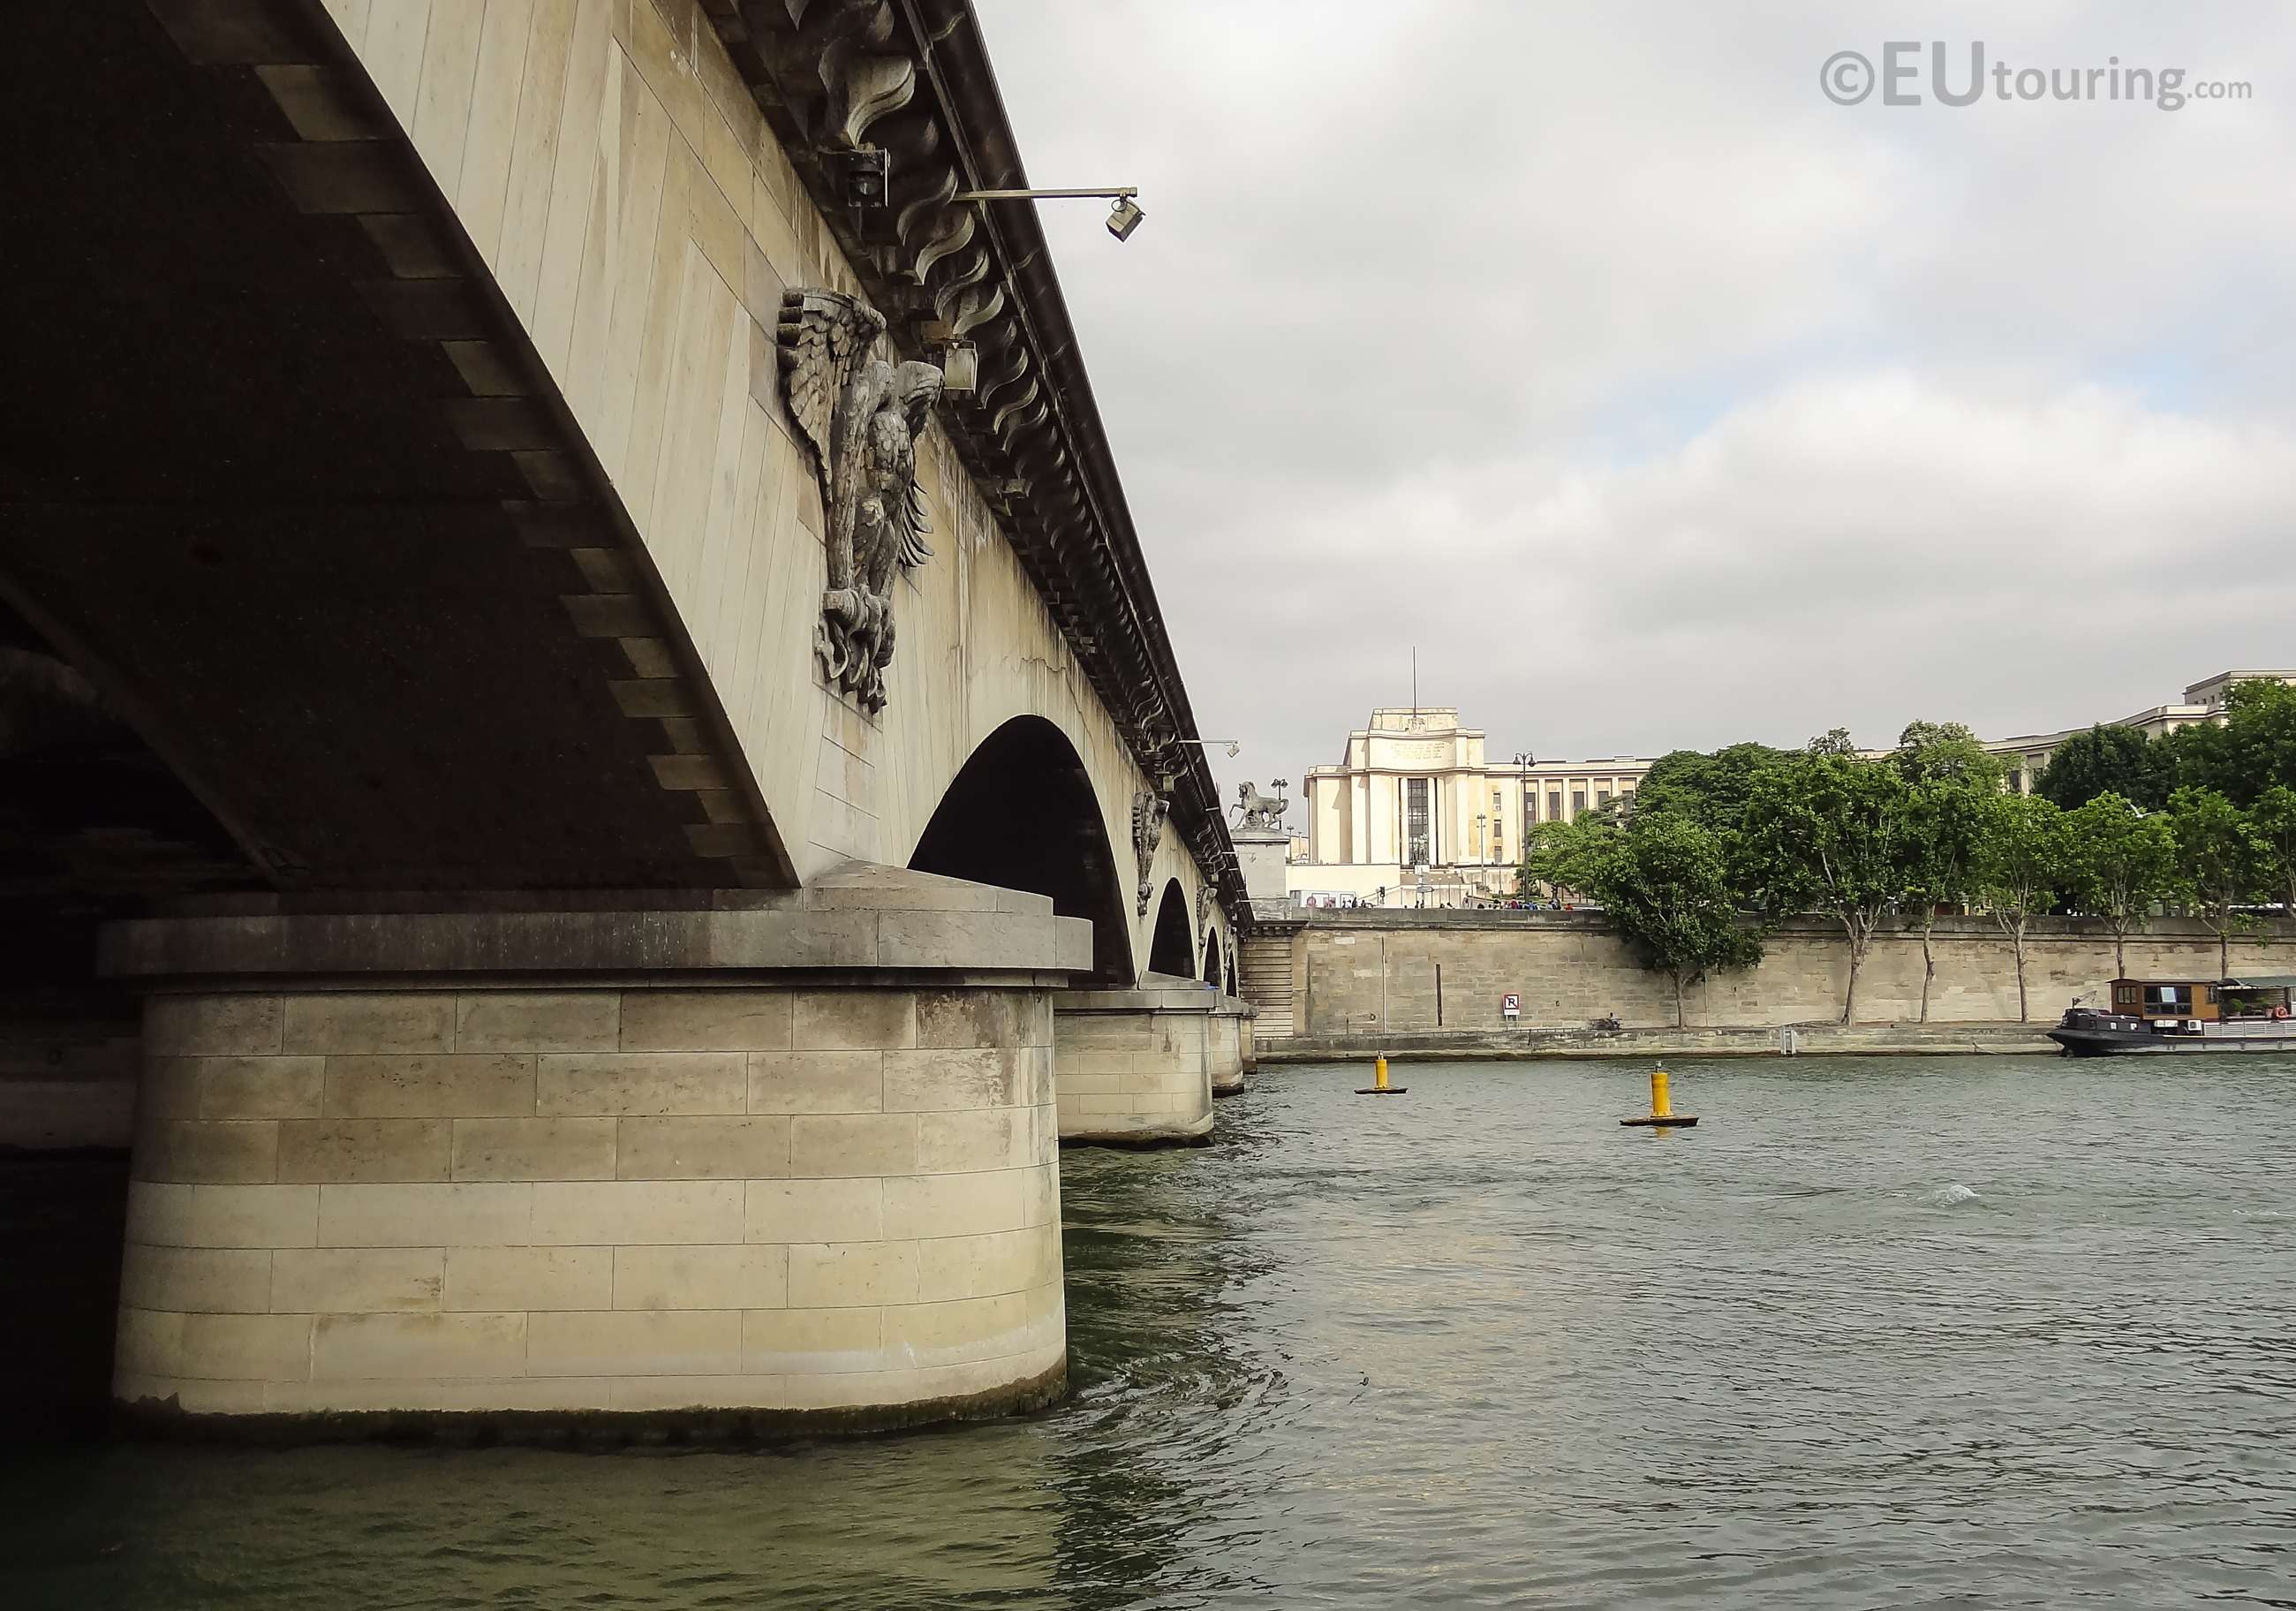 Side of the Pont d'Iena in Paris